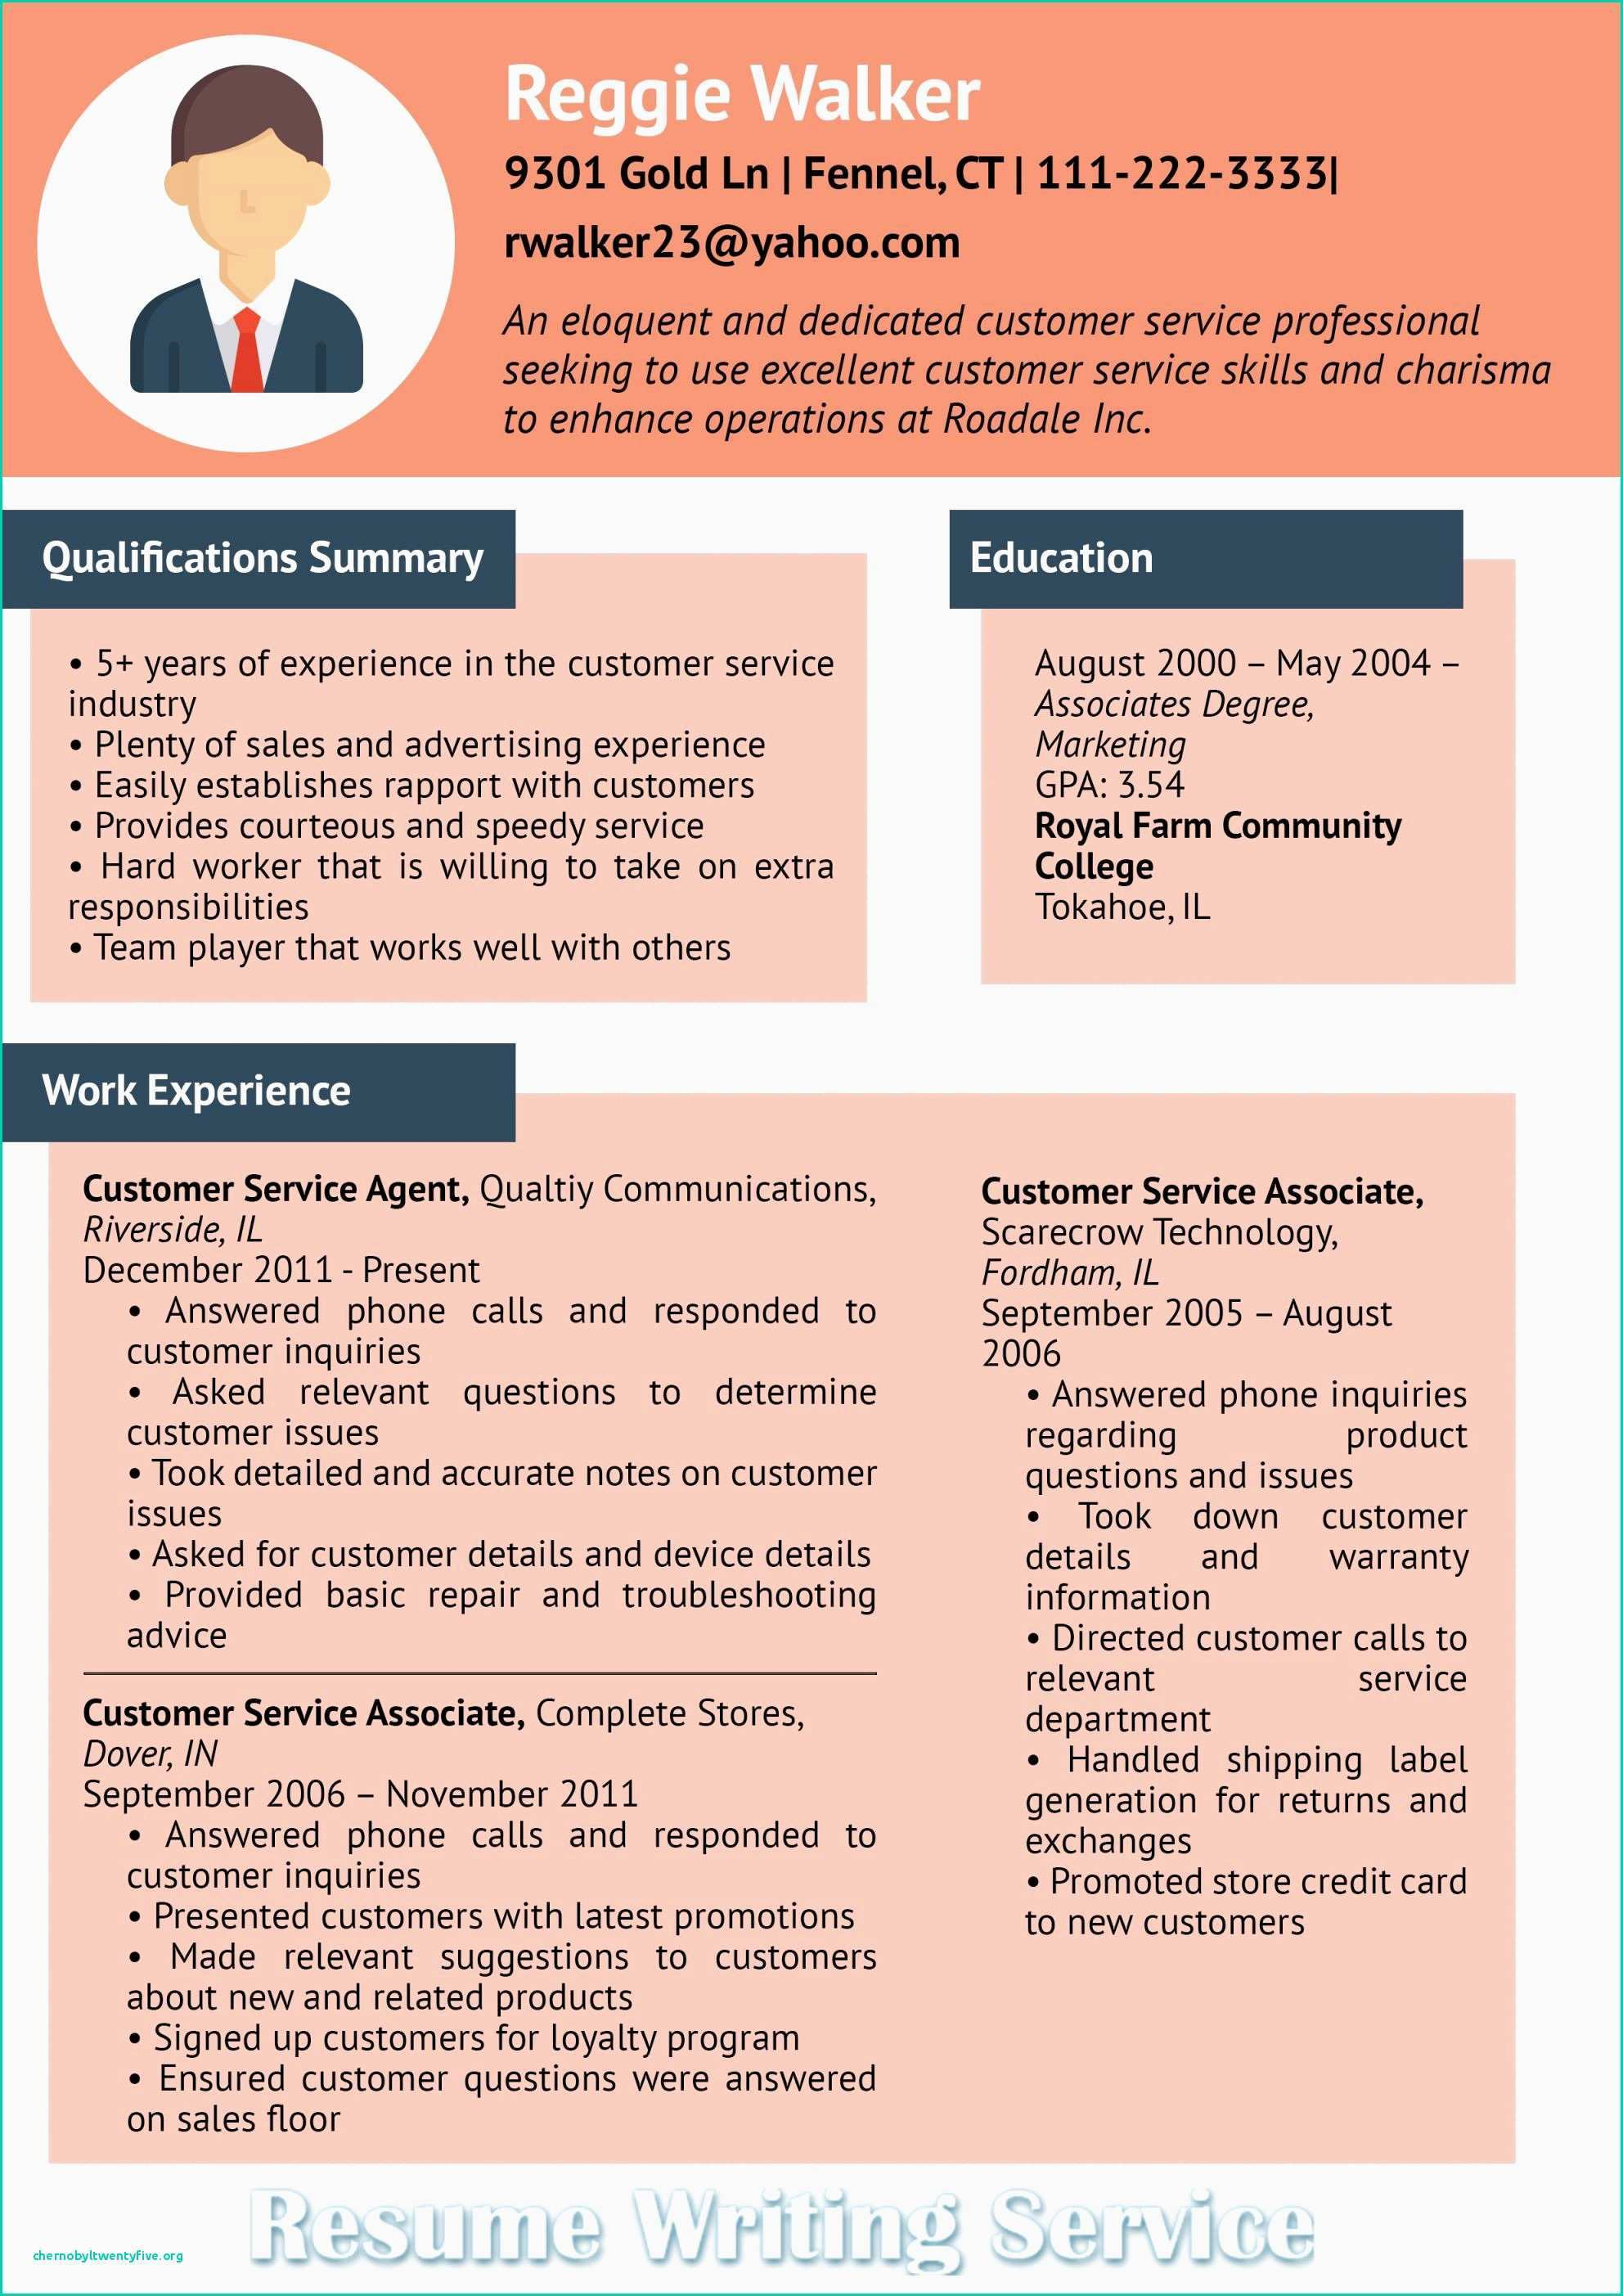 Web Developer Summary Resume - Web Design Resume Web Developer Resume Examples Best Awesome